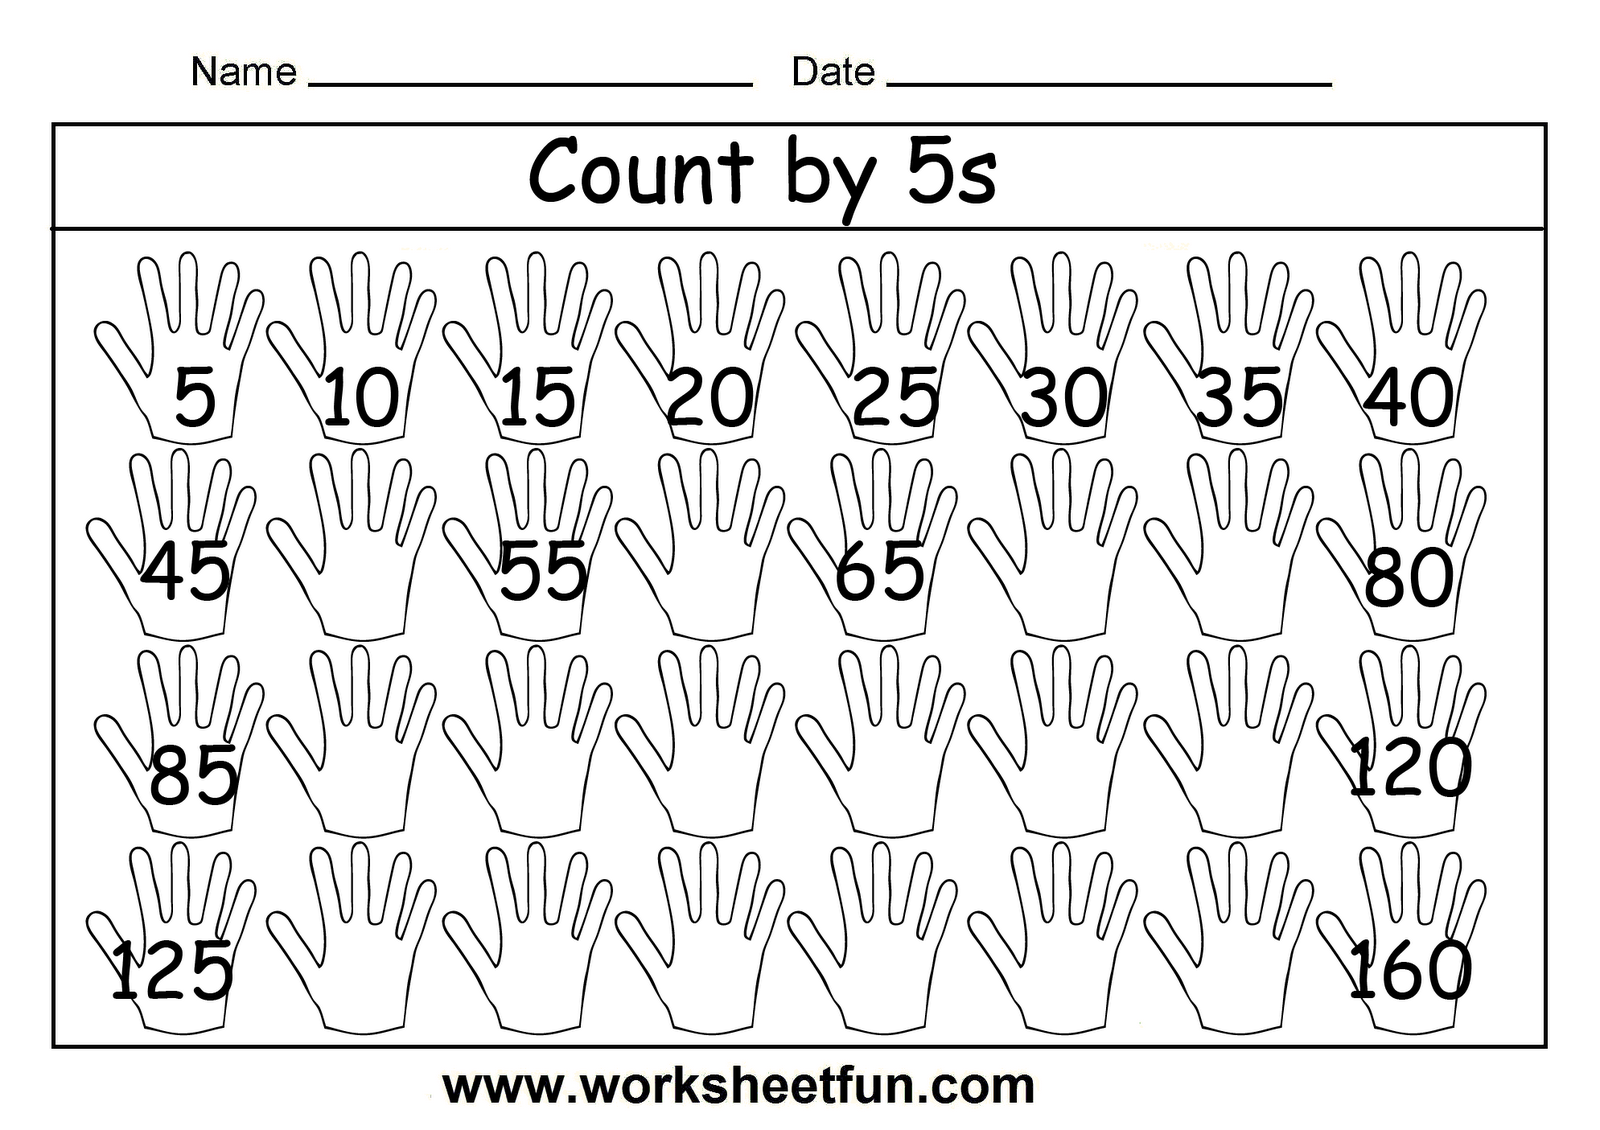 medium resolution of Worksheetfun - FREE PRINTABLE WORKSHEETS   Free printable math worksheets